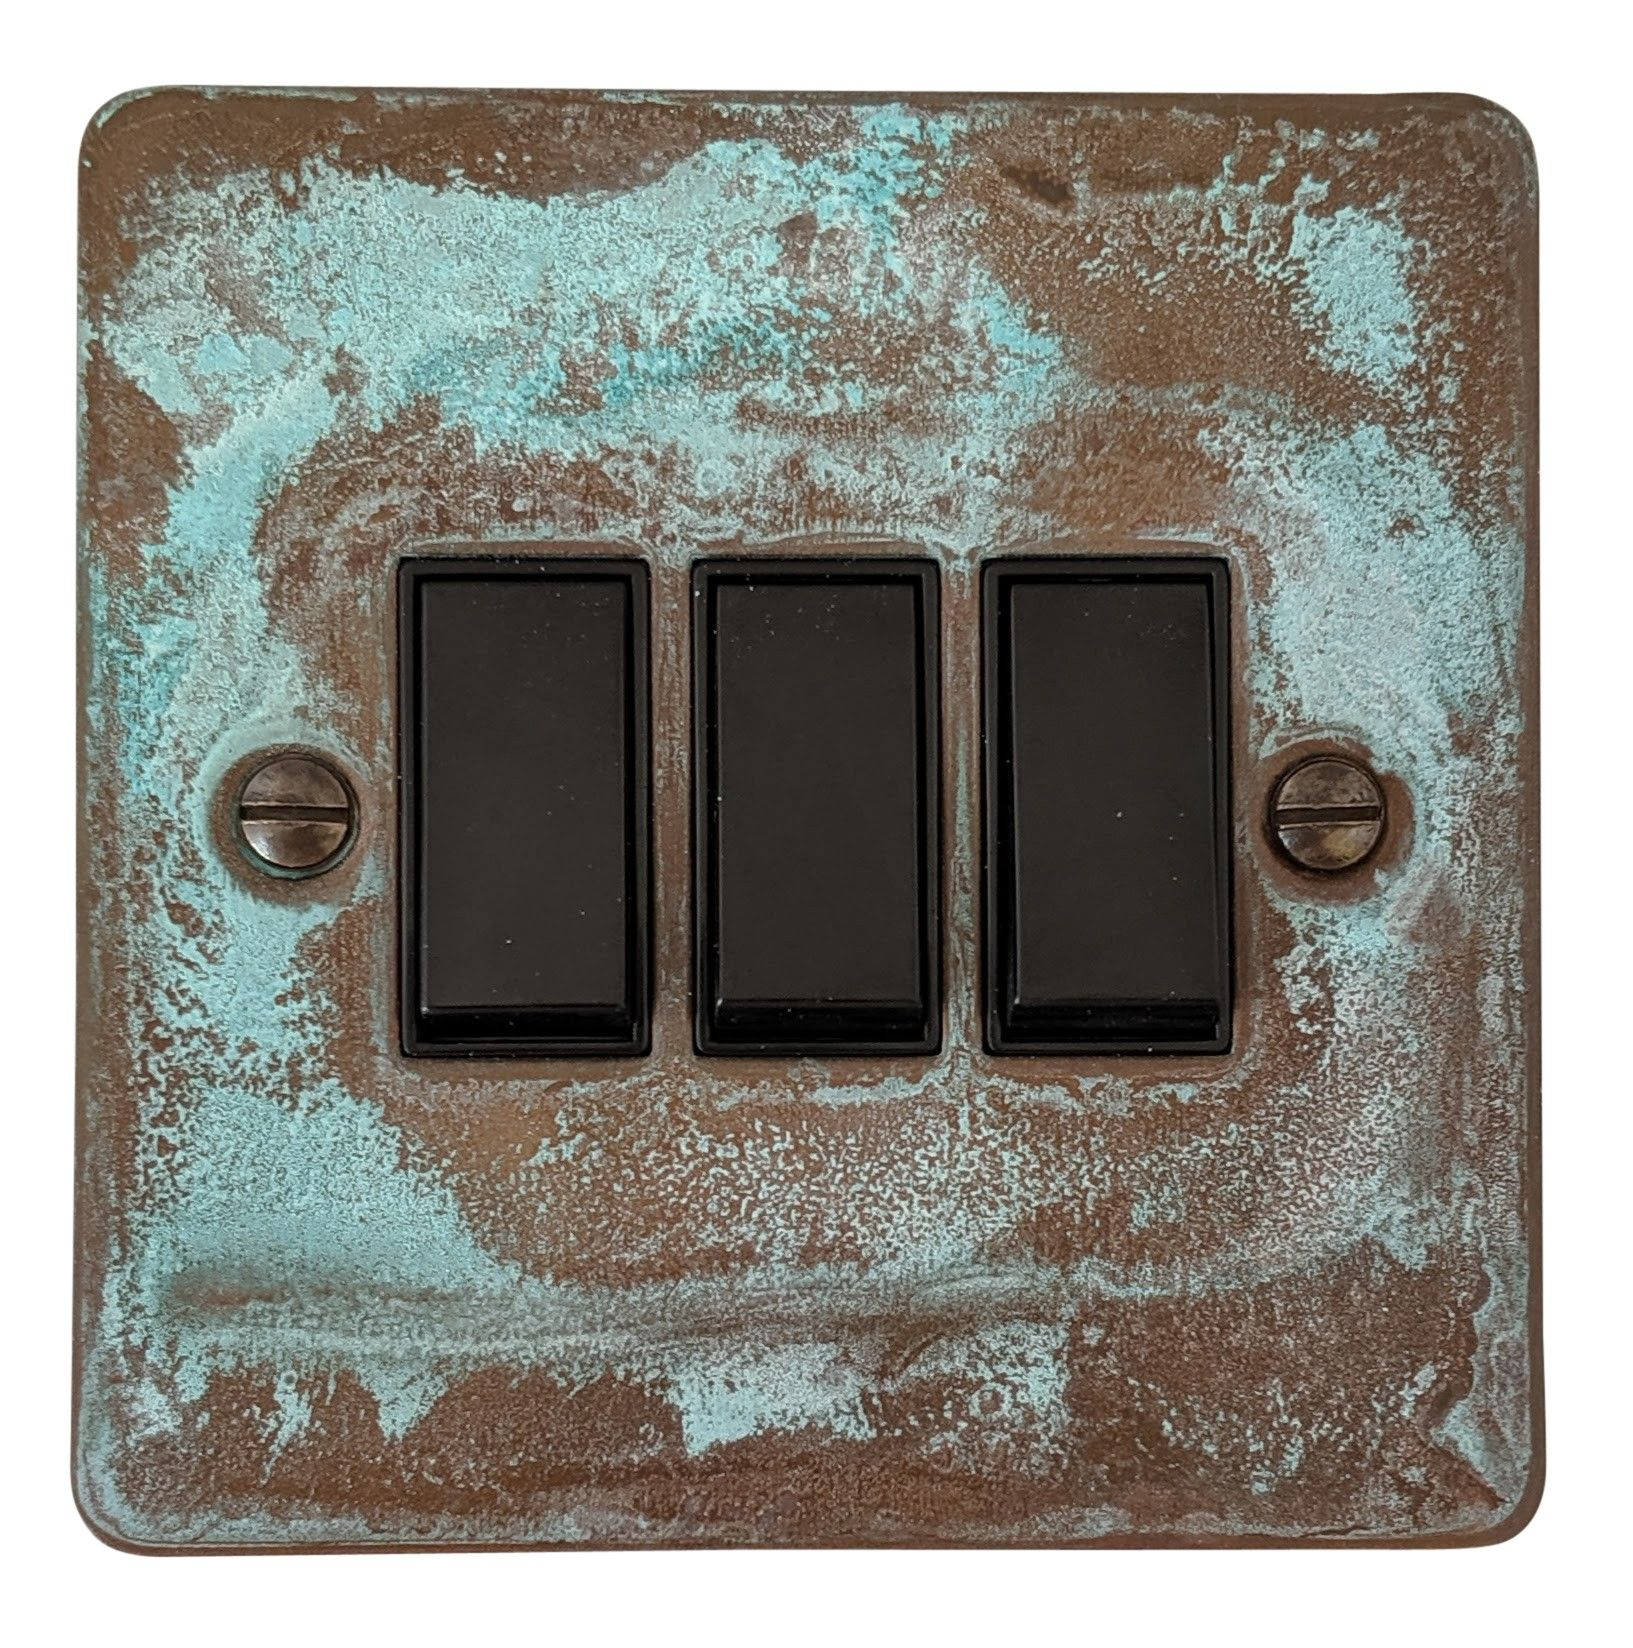 G&H FV3B Flat Plate Verdigris 3 Gang 1 or 2 Way Rocker Light Switch